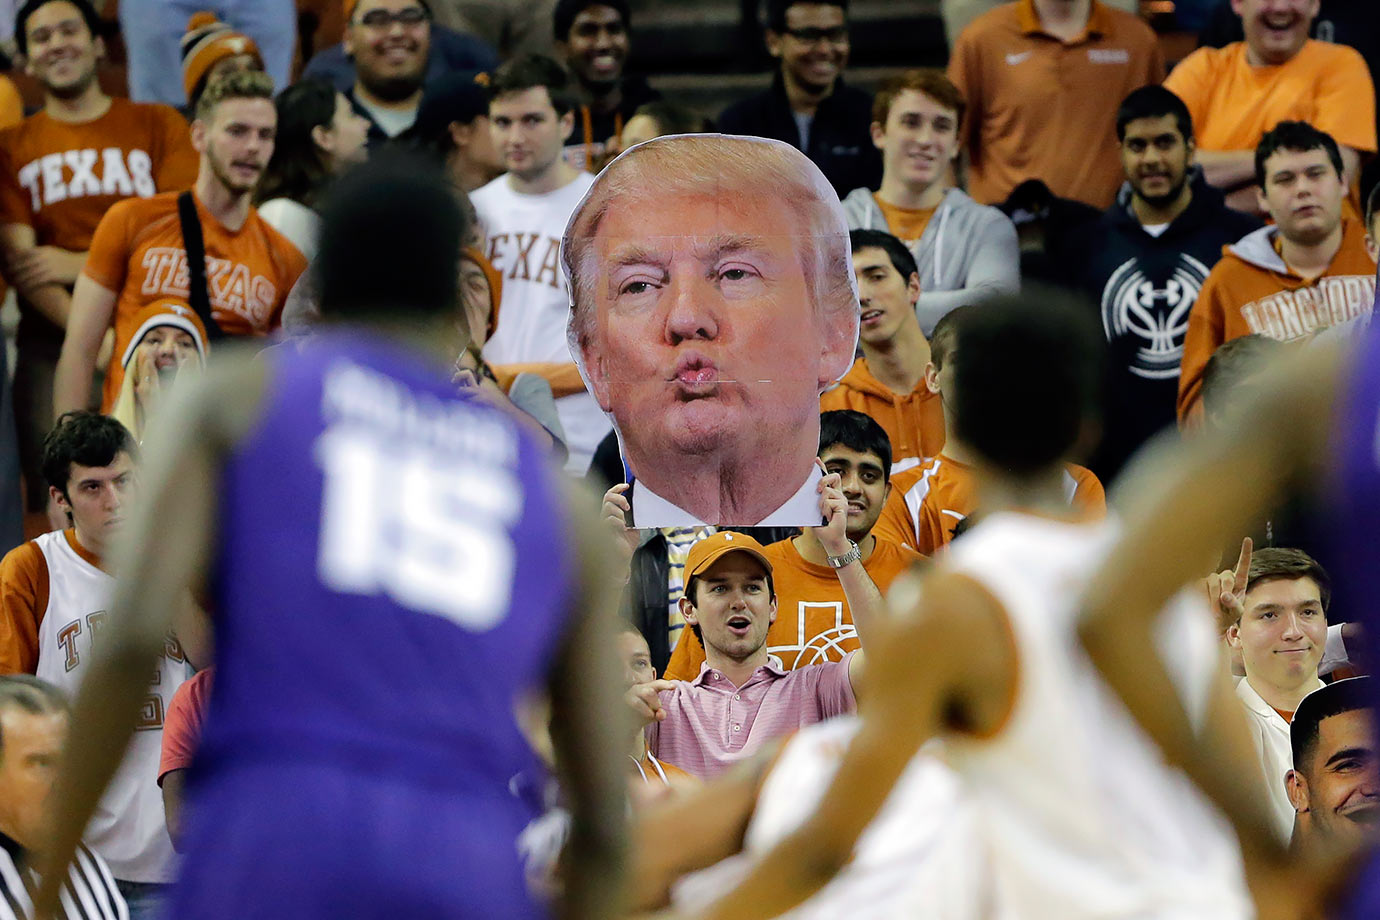 A Texas Longhorns fan waves a big head of Donald Trump in an attempt to distract the TCU Horned Frogs during their basketball game in Austin, Texas.